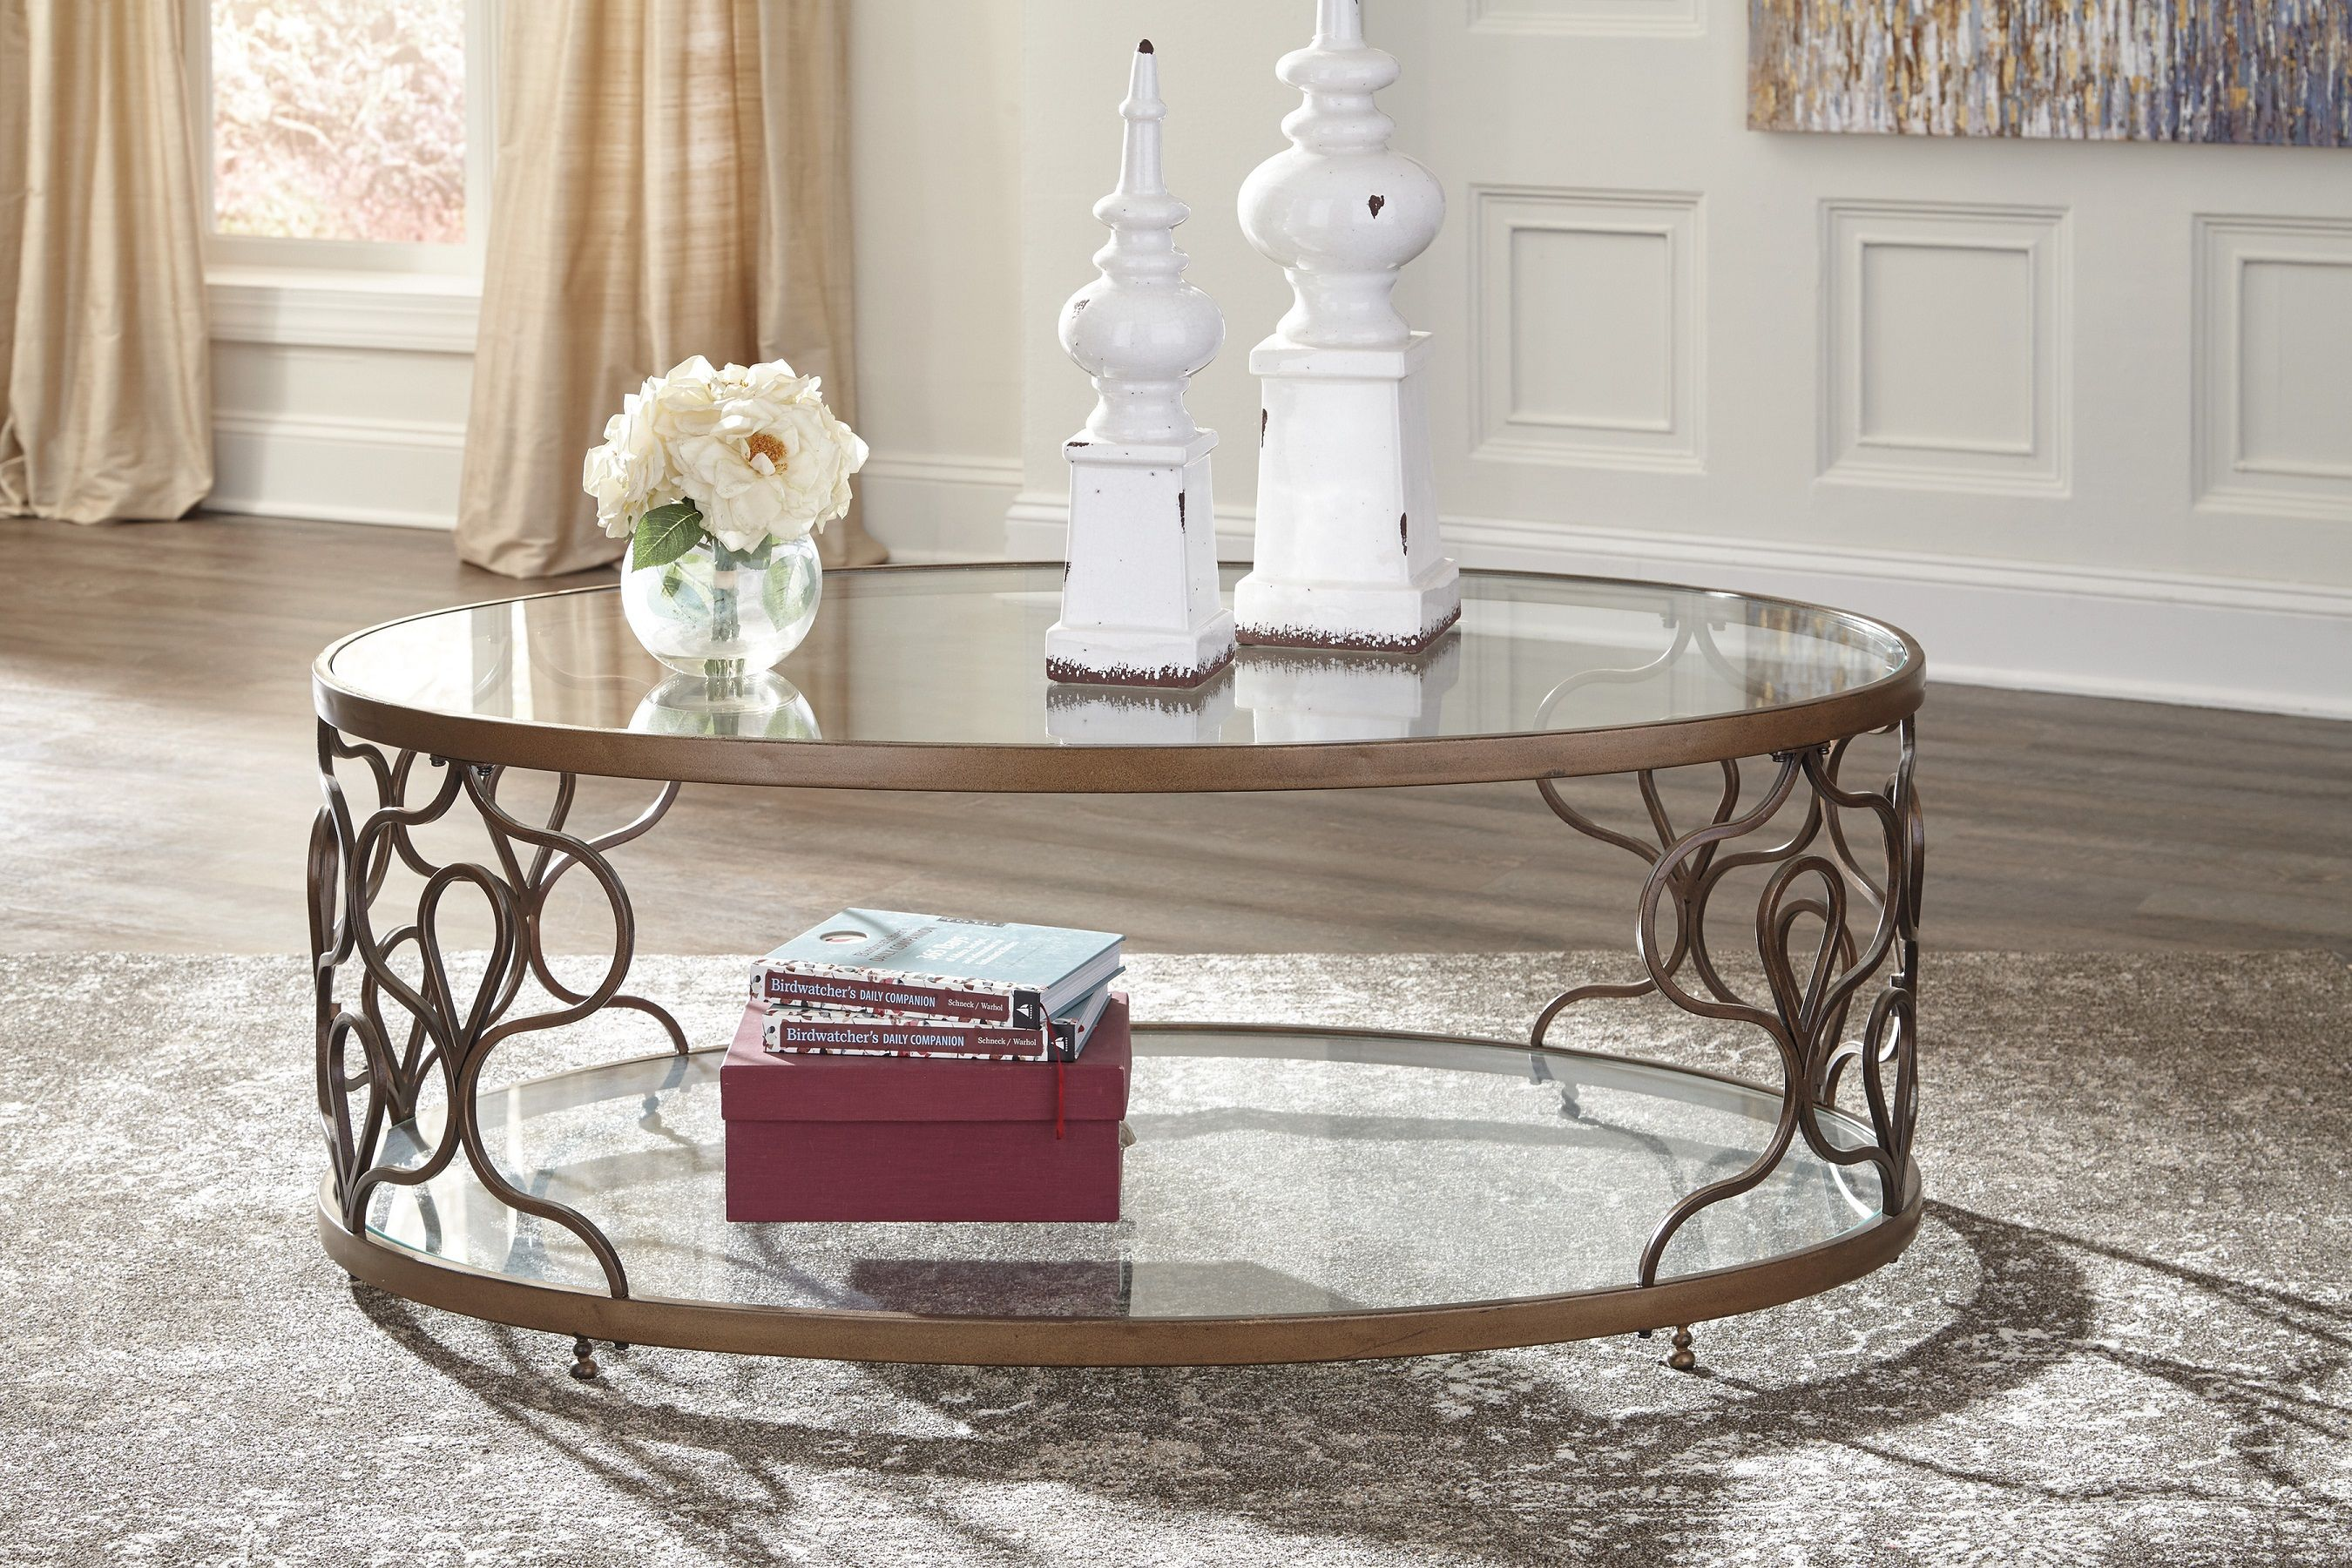 Charmant Farloni Oval Coffee Table T086 By Ashley Furniture Bronze Tempered Glass  Geometric Shapes